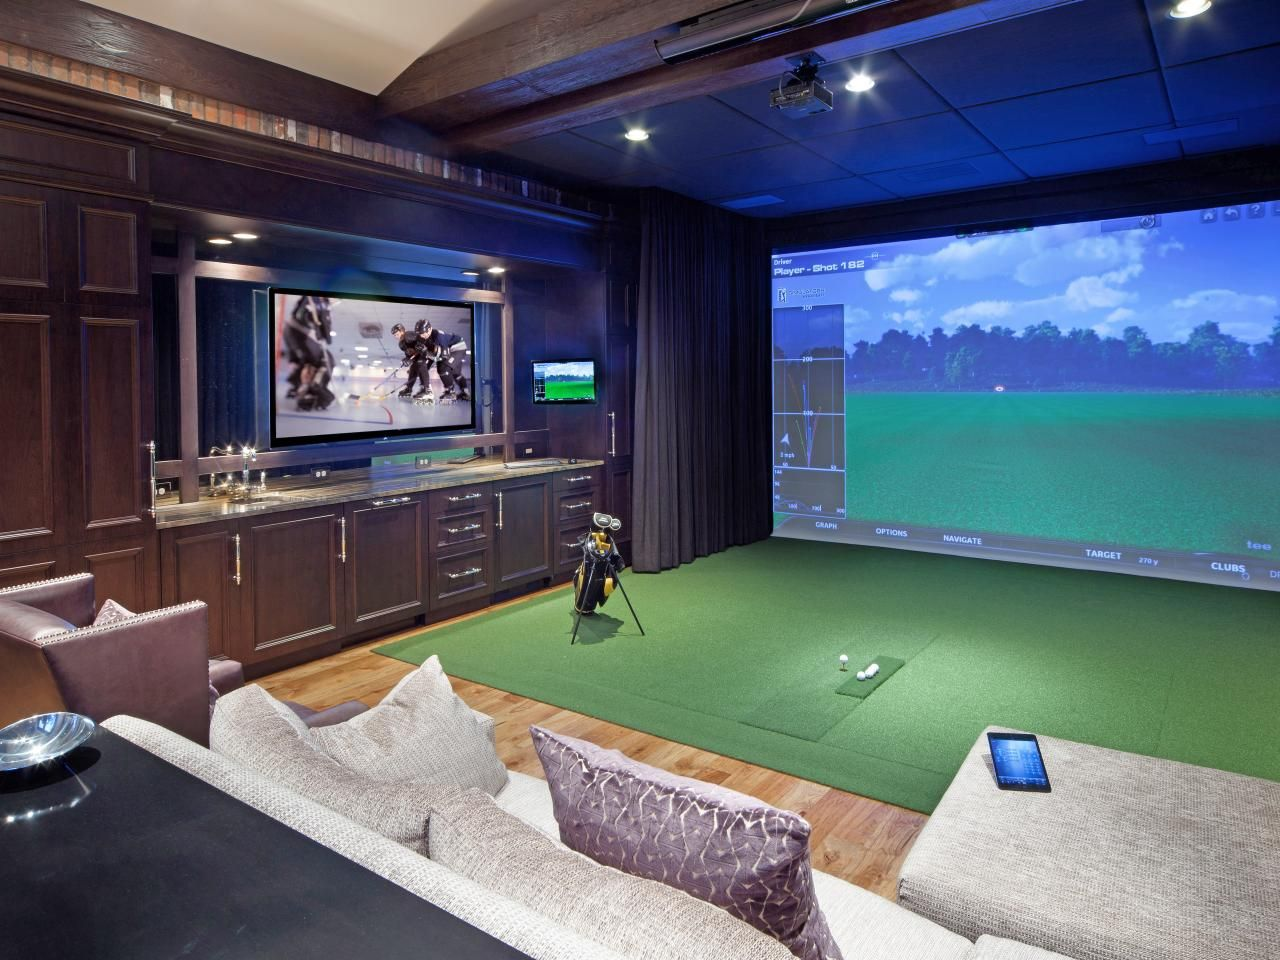 Awesome Home Media Room Ideas DesignAmazing Pictures Small - Awesome media room designs